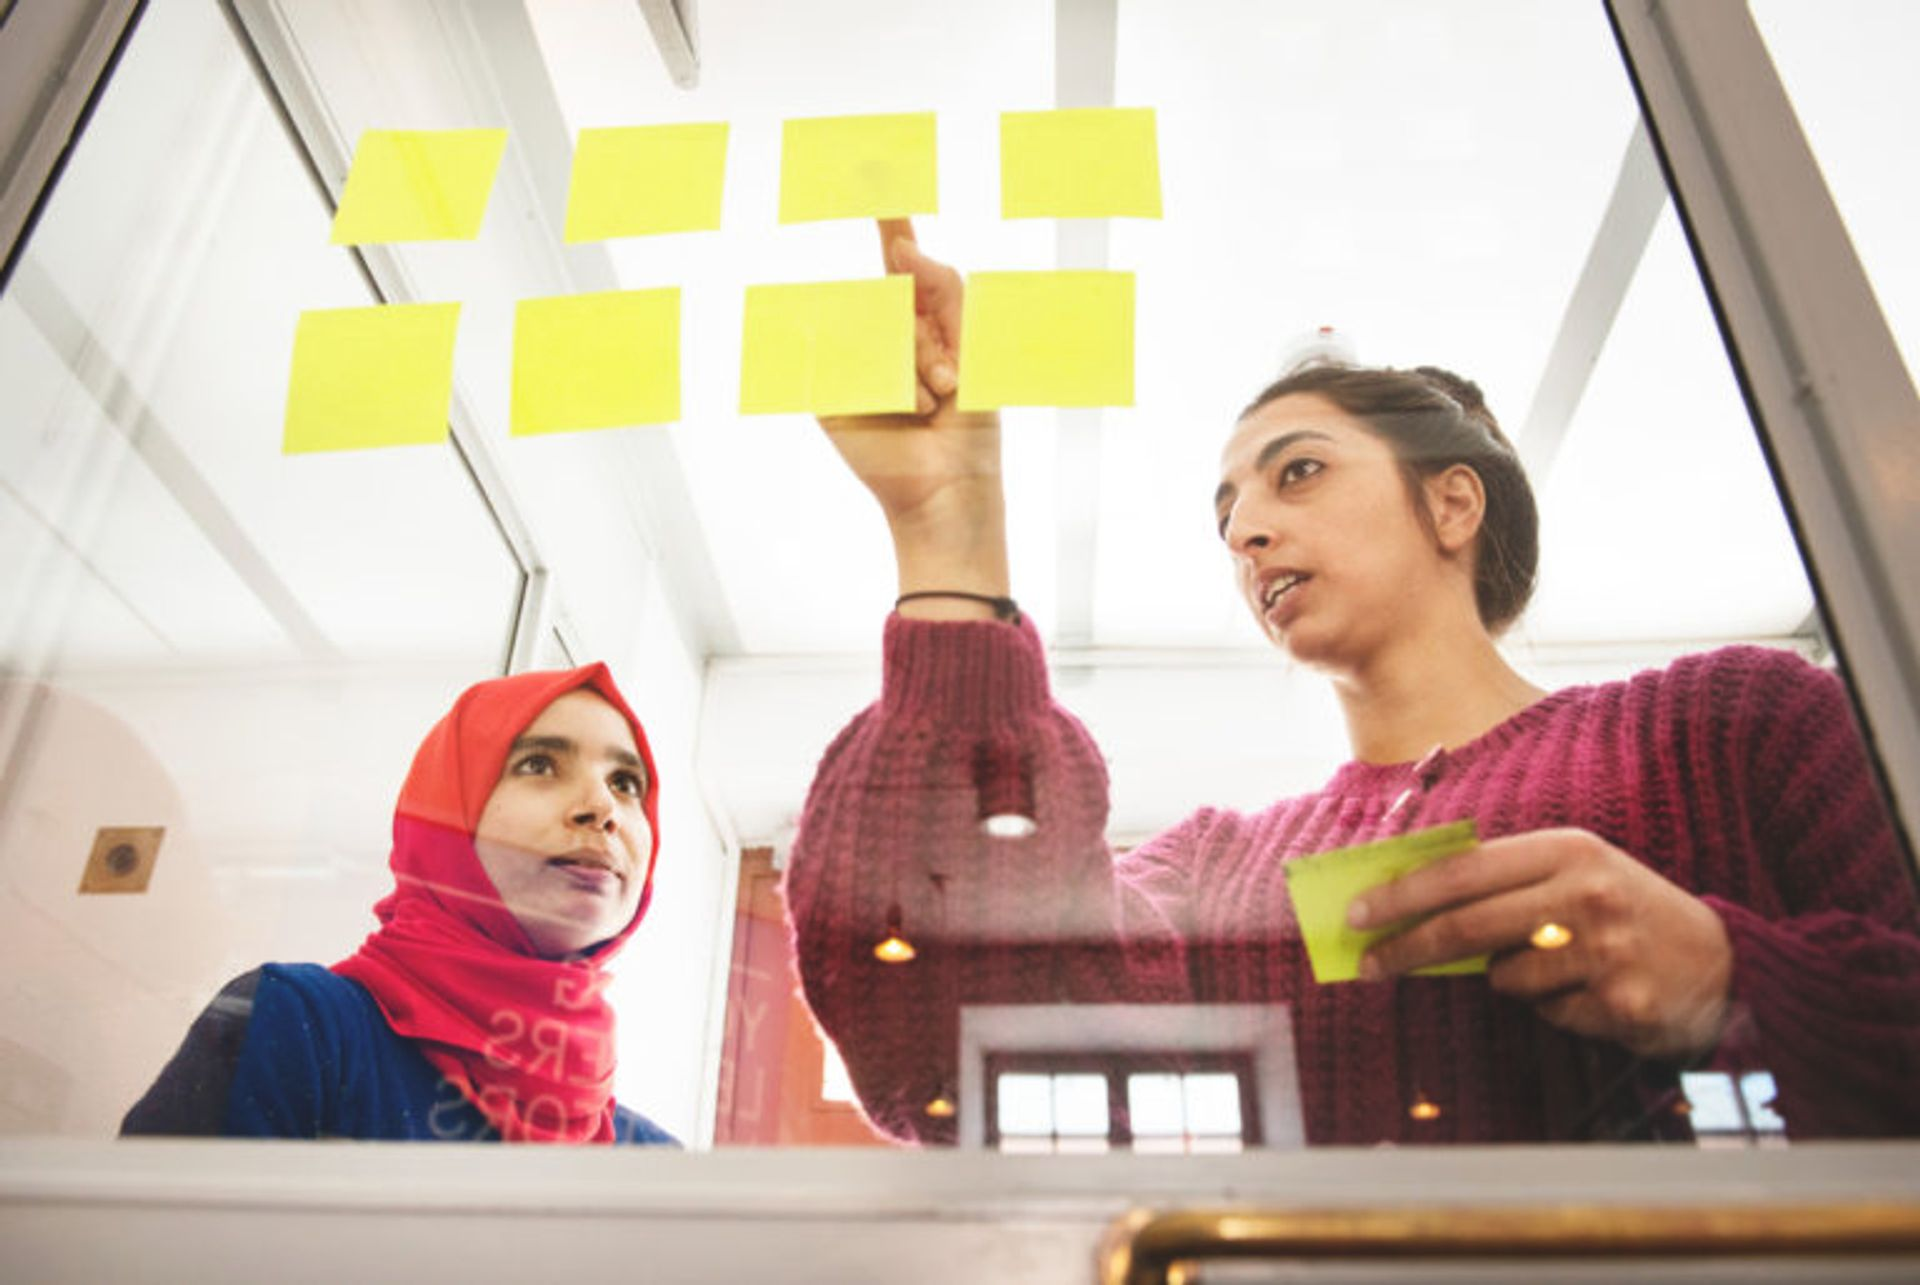 Two students working on a project with yellow post-it notes.